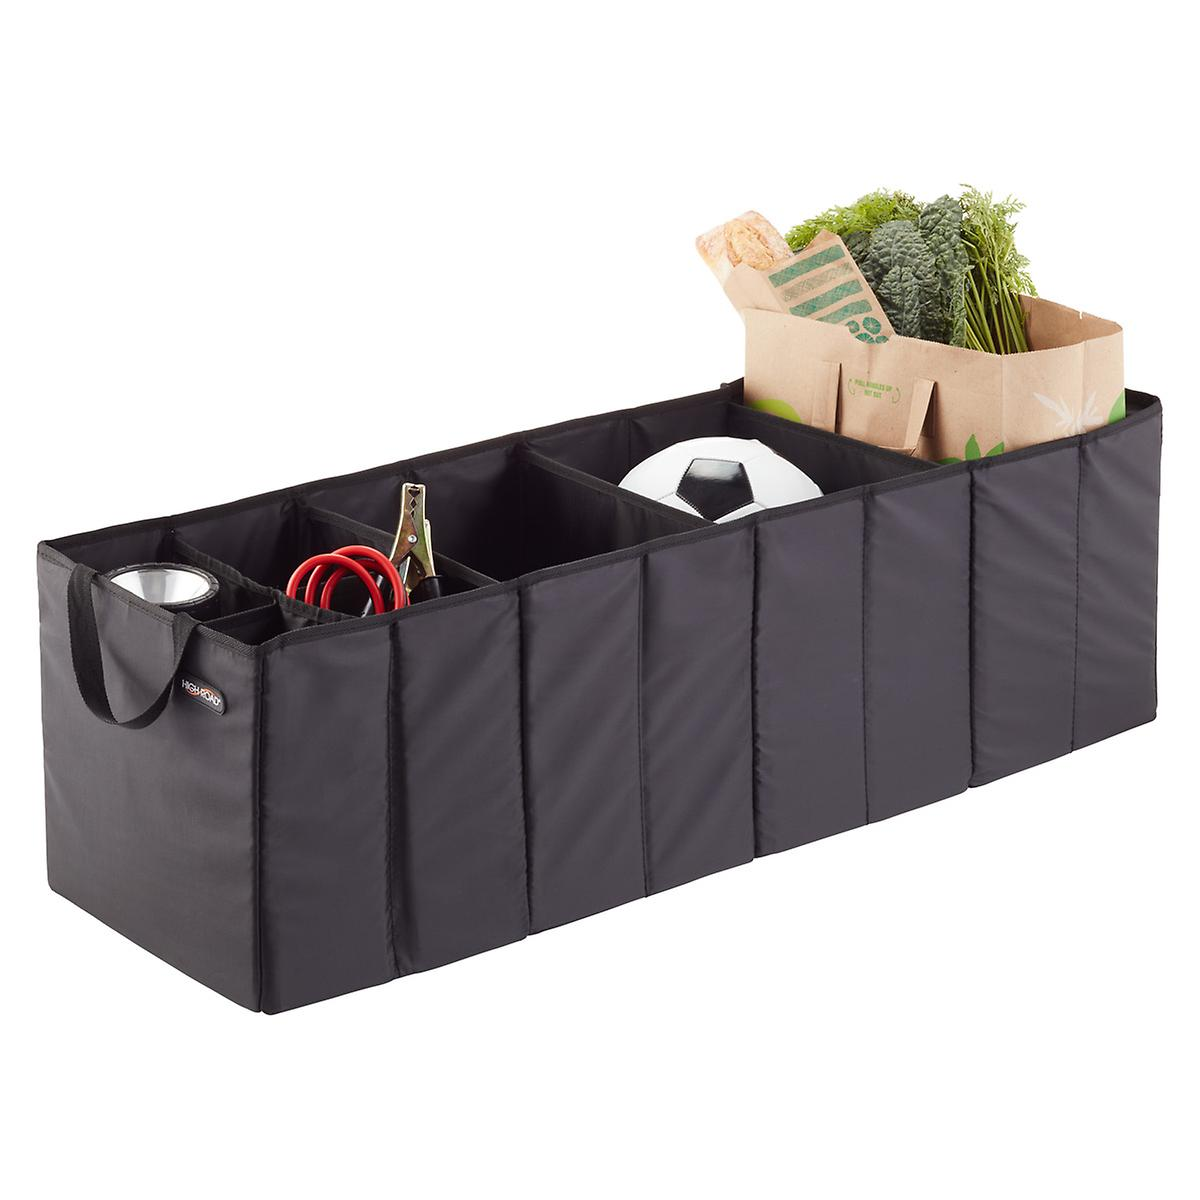 Accordion Cargo Organizer